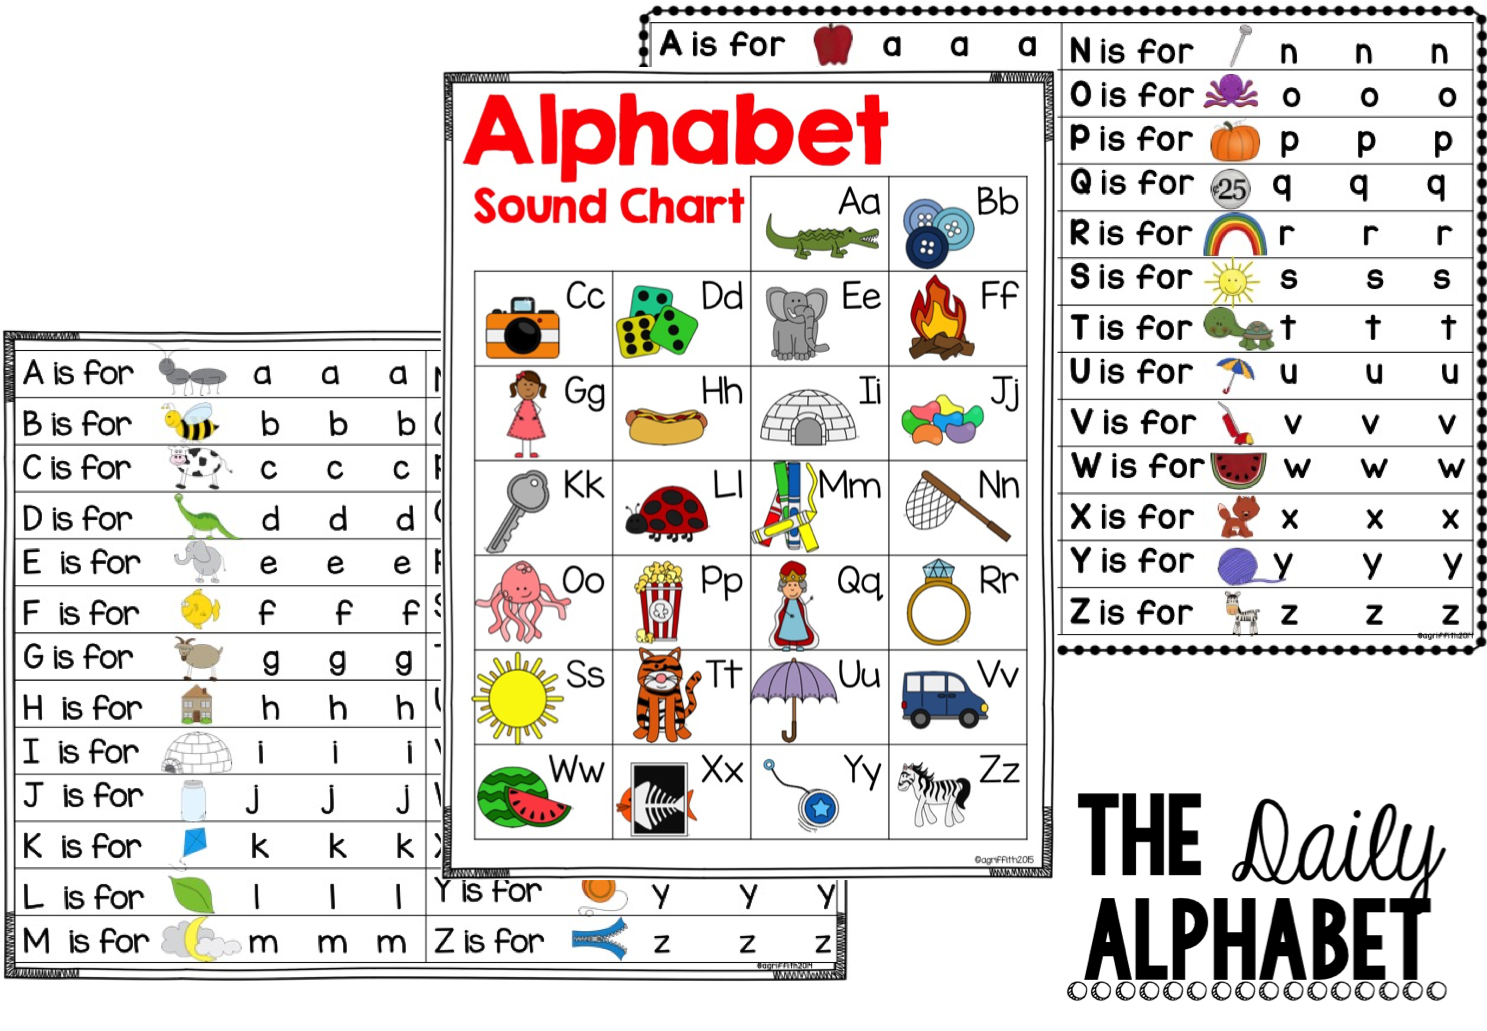 Teach Child How To Read Phonics Sounds For Alphabets